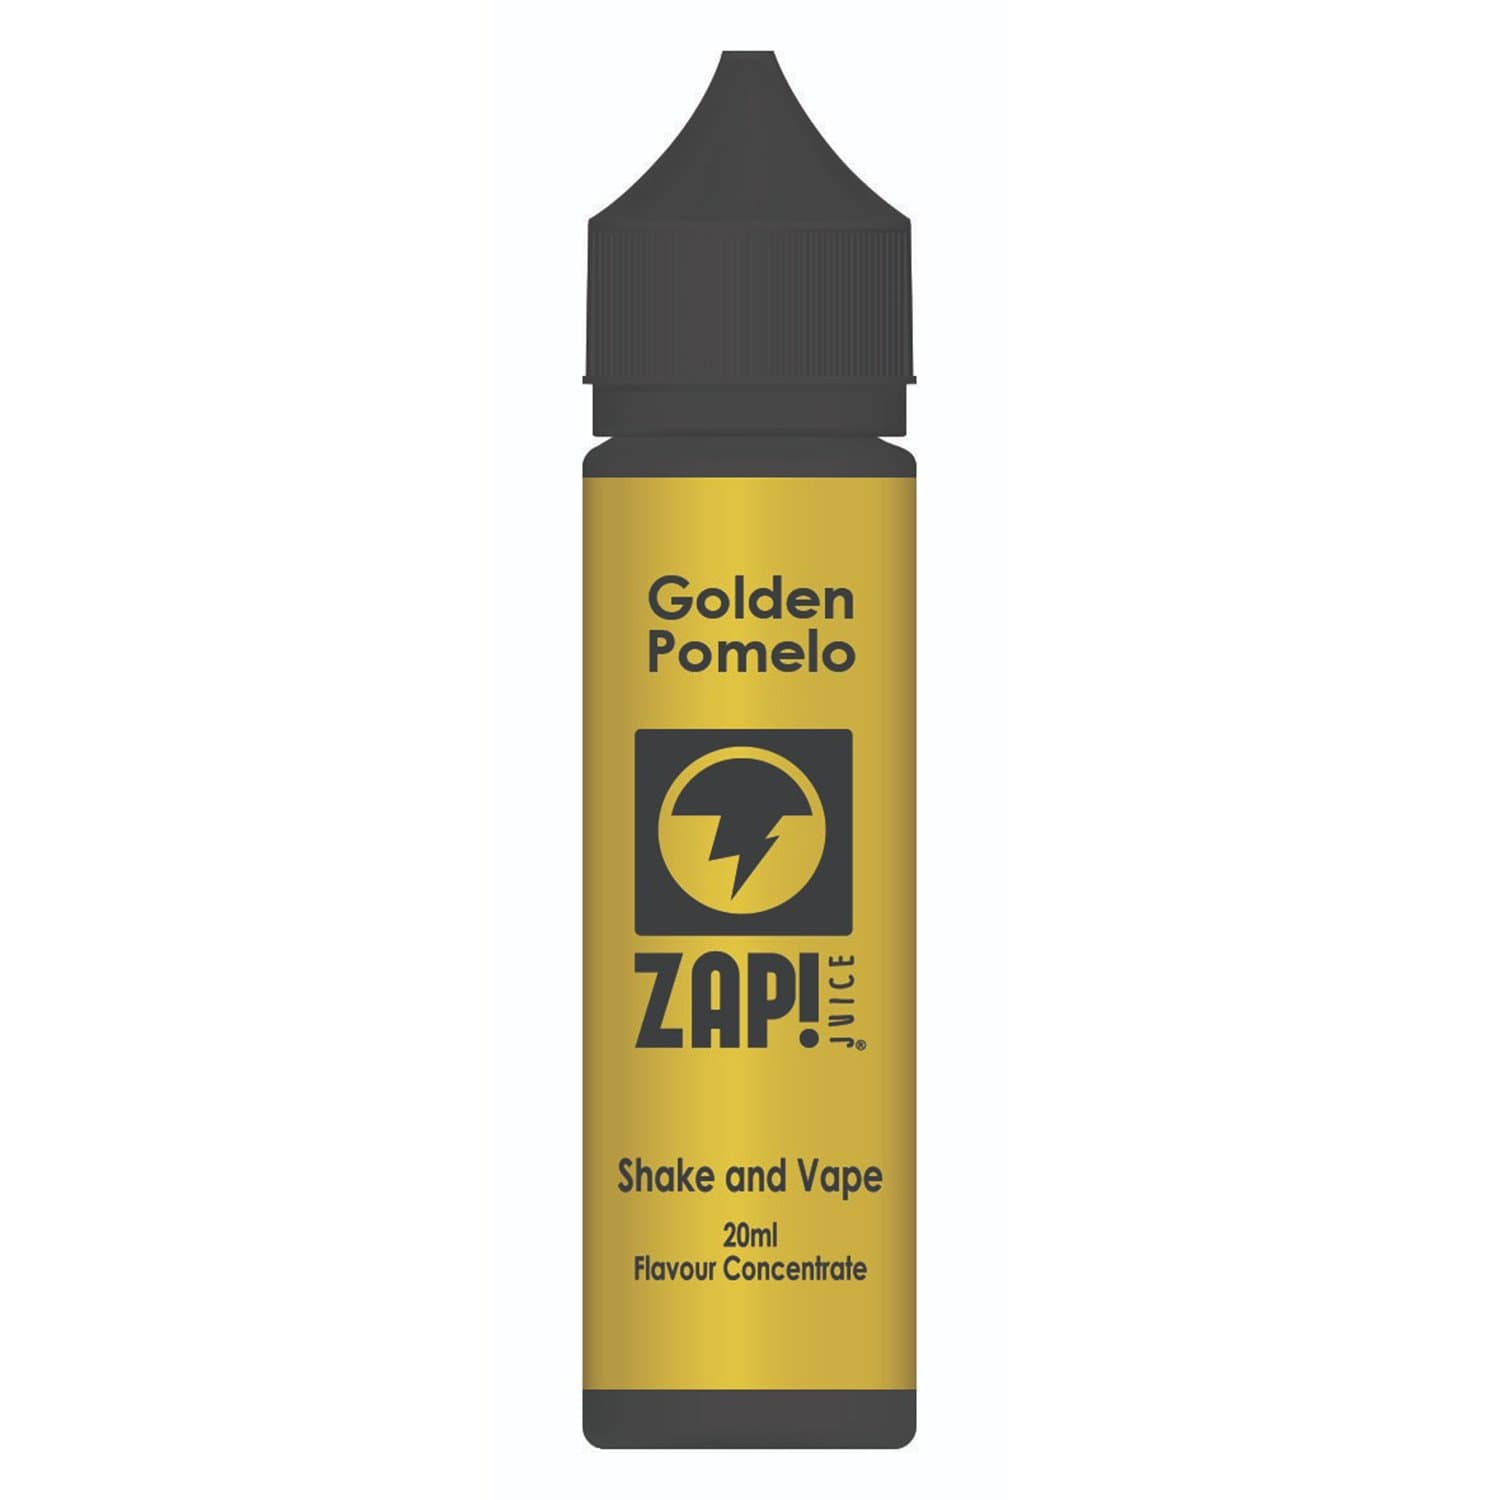 ZAP! Juice Golden Pomelo Shake and Vape 20ml Flavour Concentrate - Zap Juice Online UK | E-Liquid | Vape Shop  | Authentic flavours